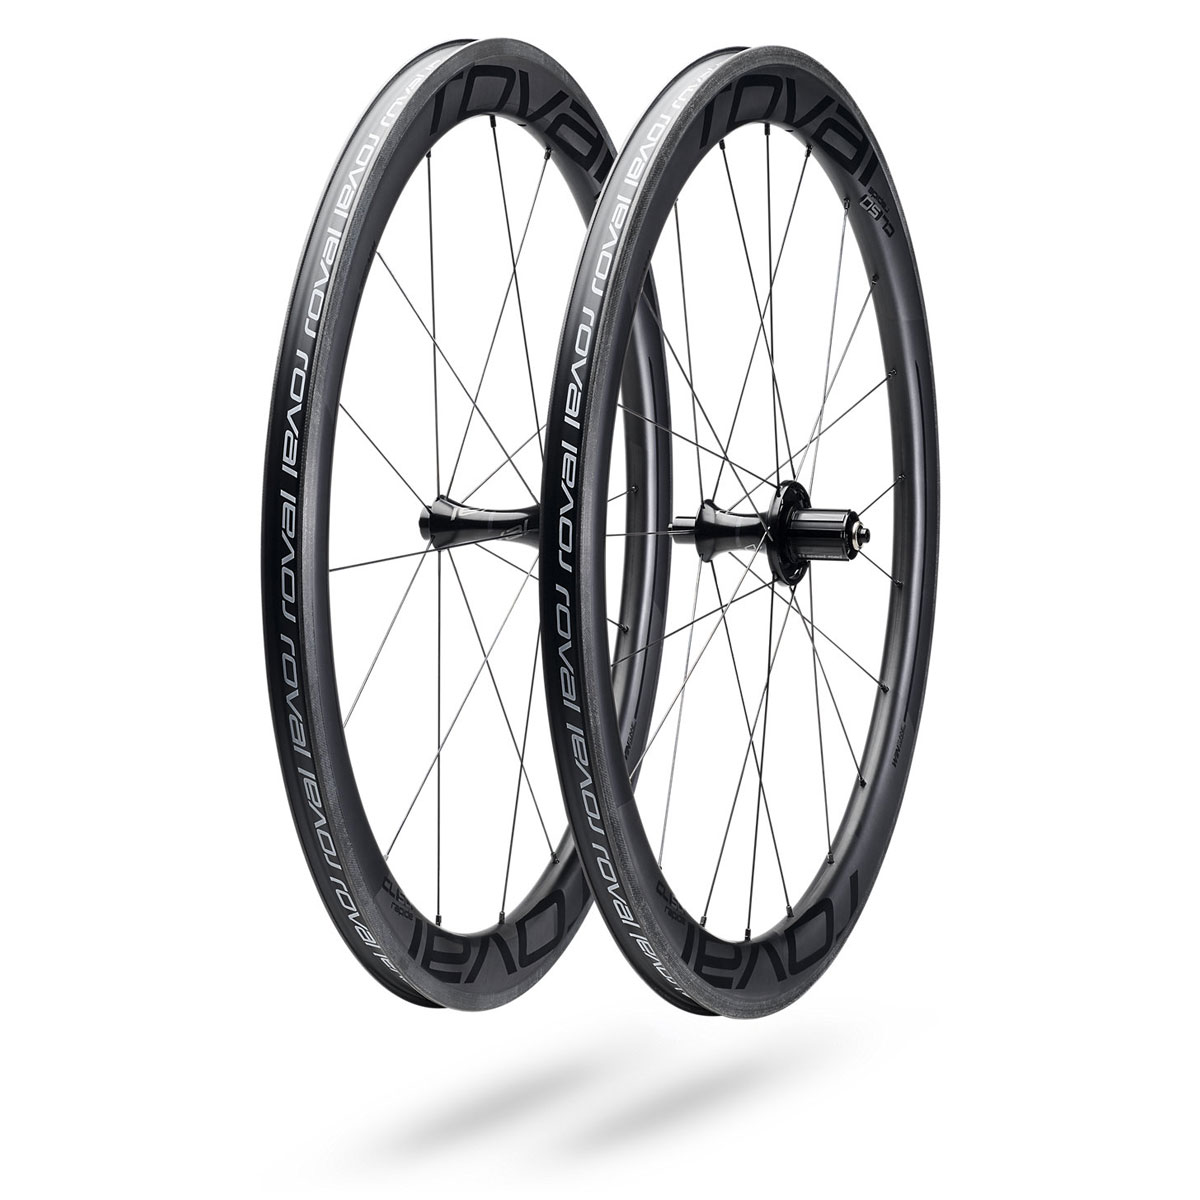 ROUES ROVAL CL 50 PAIRE